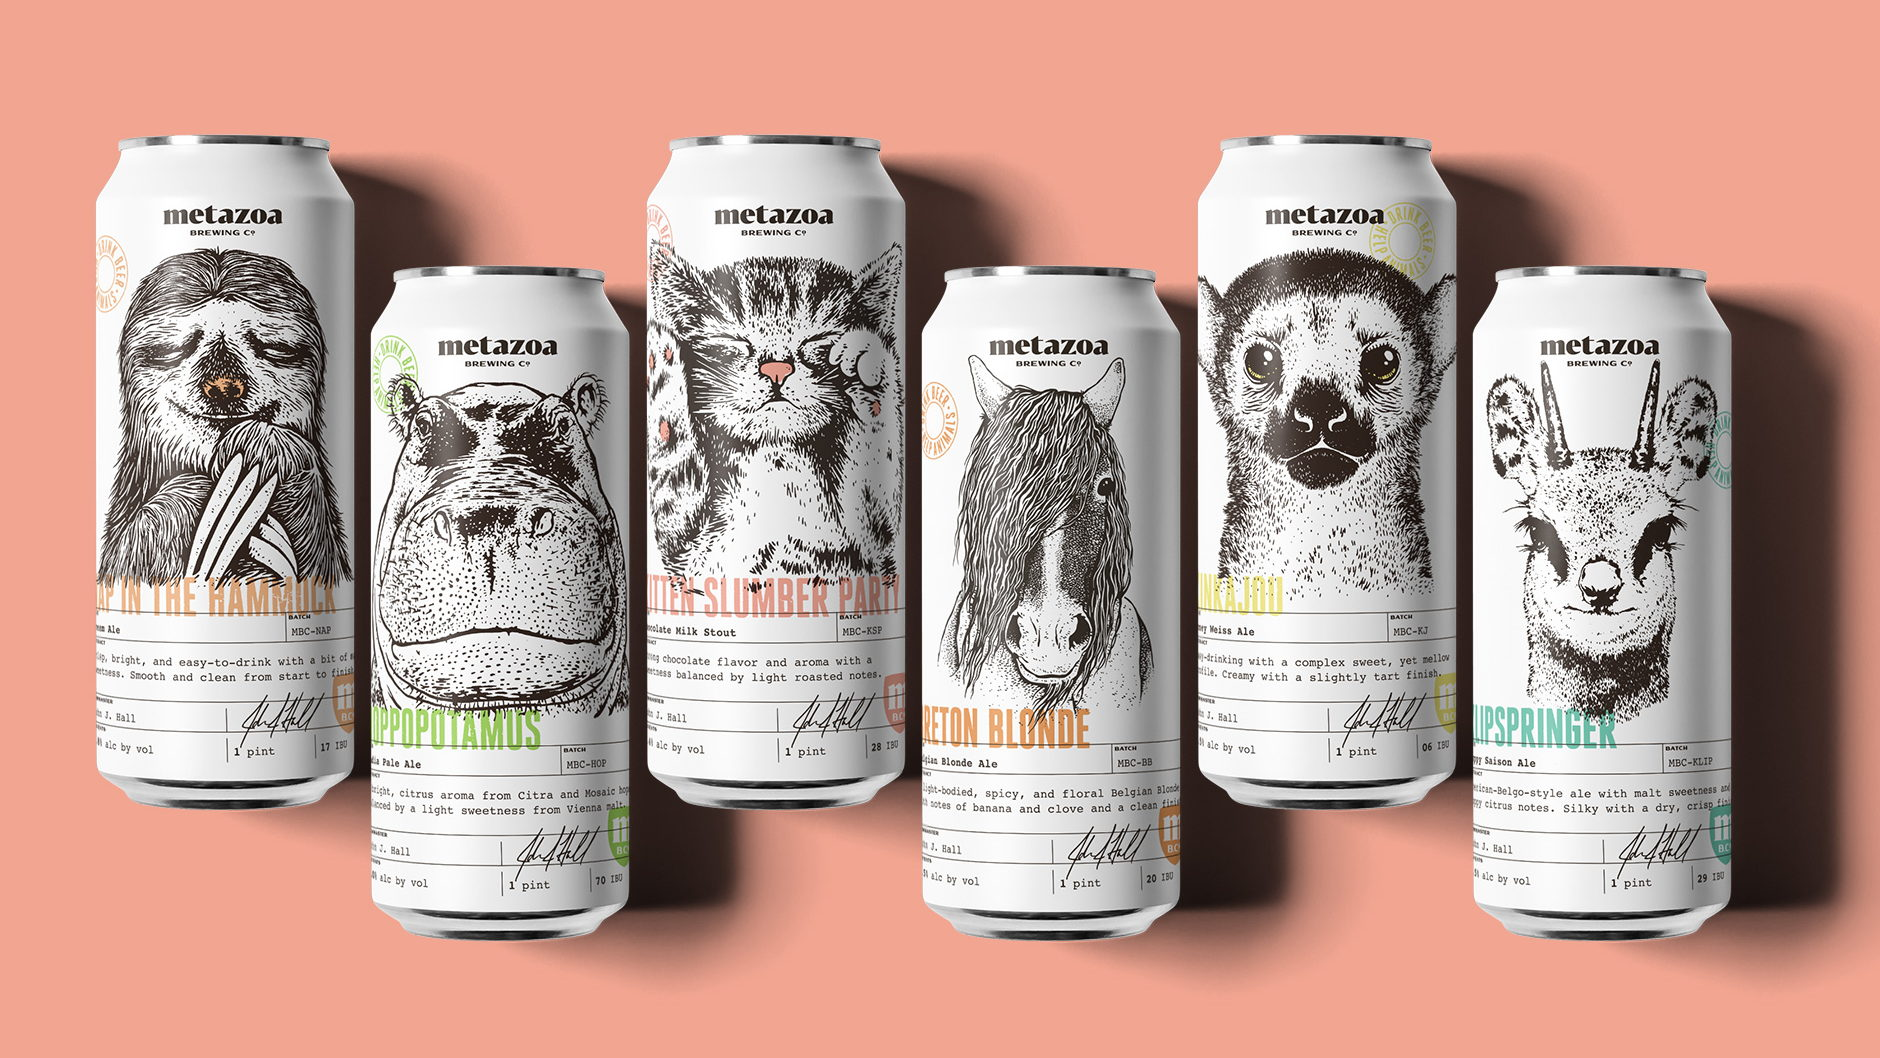 These Adorable Beer Cans Were Made With Animal Lovers In Mind Dieline Design Branding Packaging Inspiration